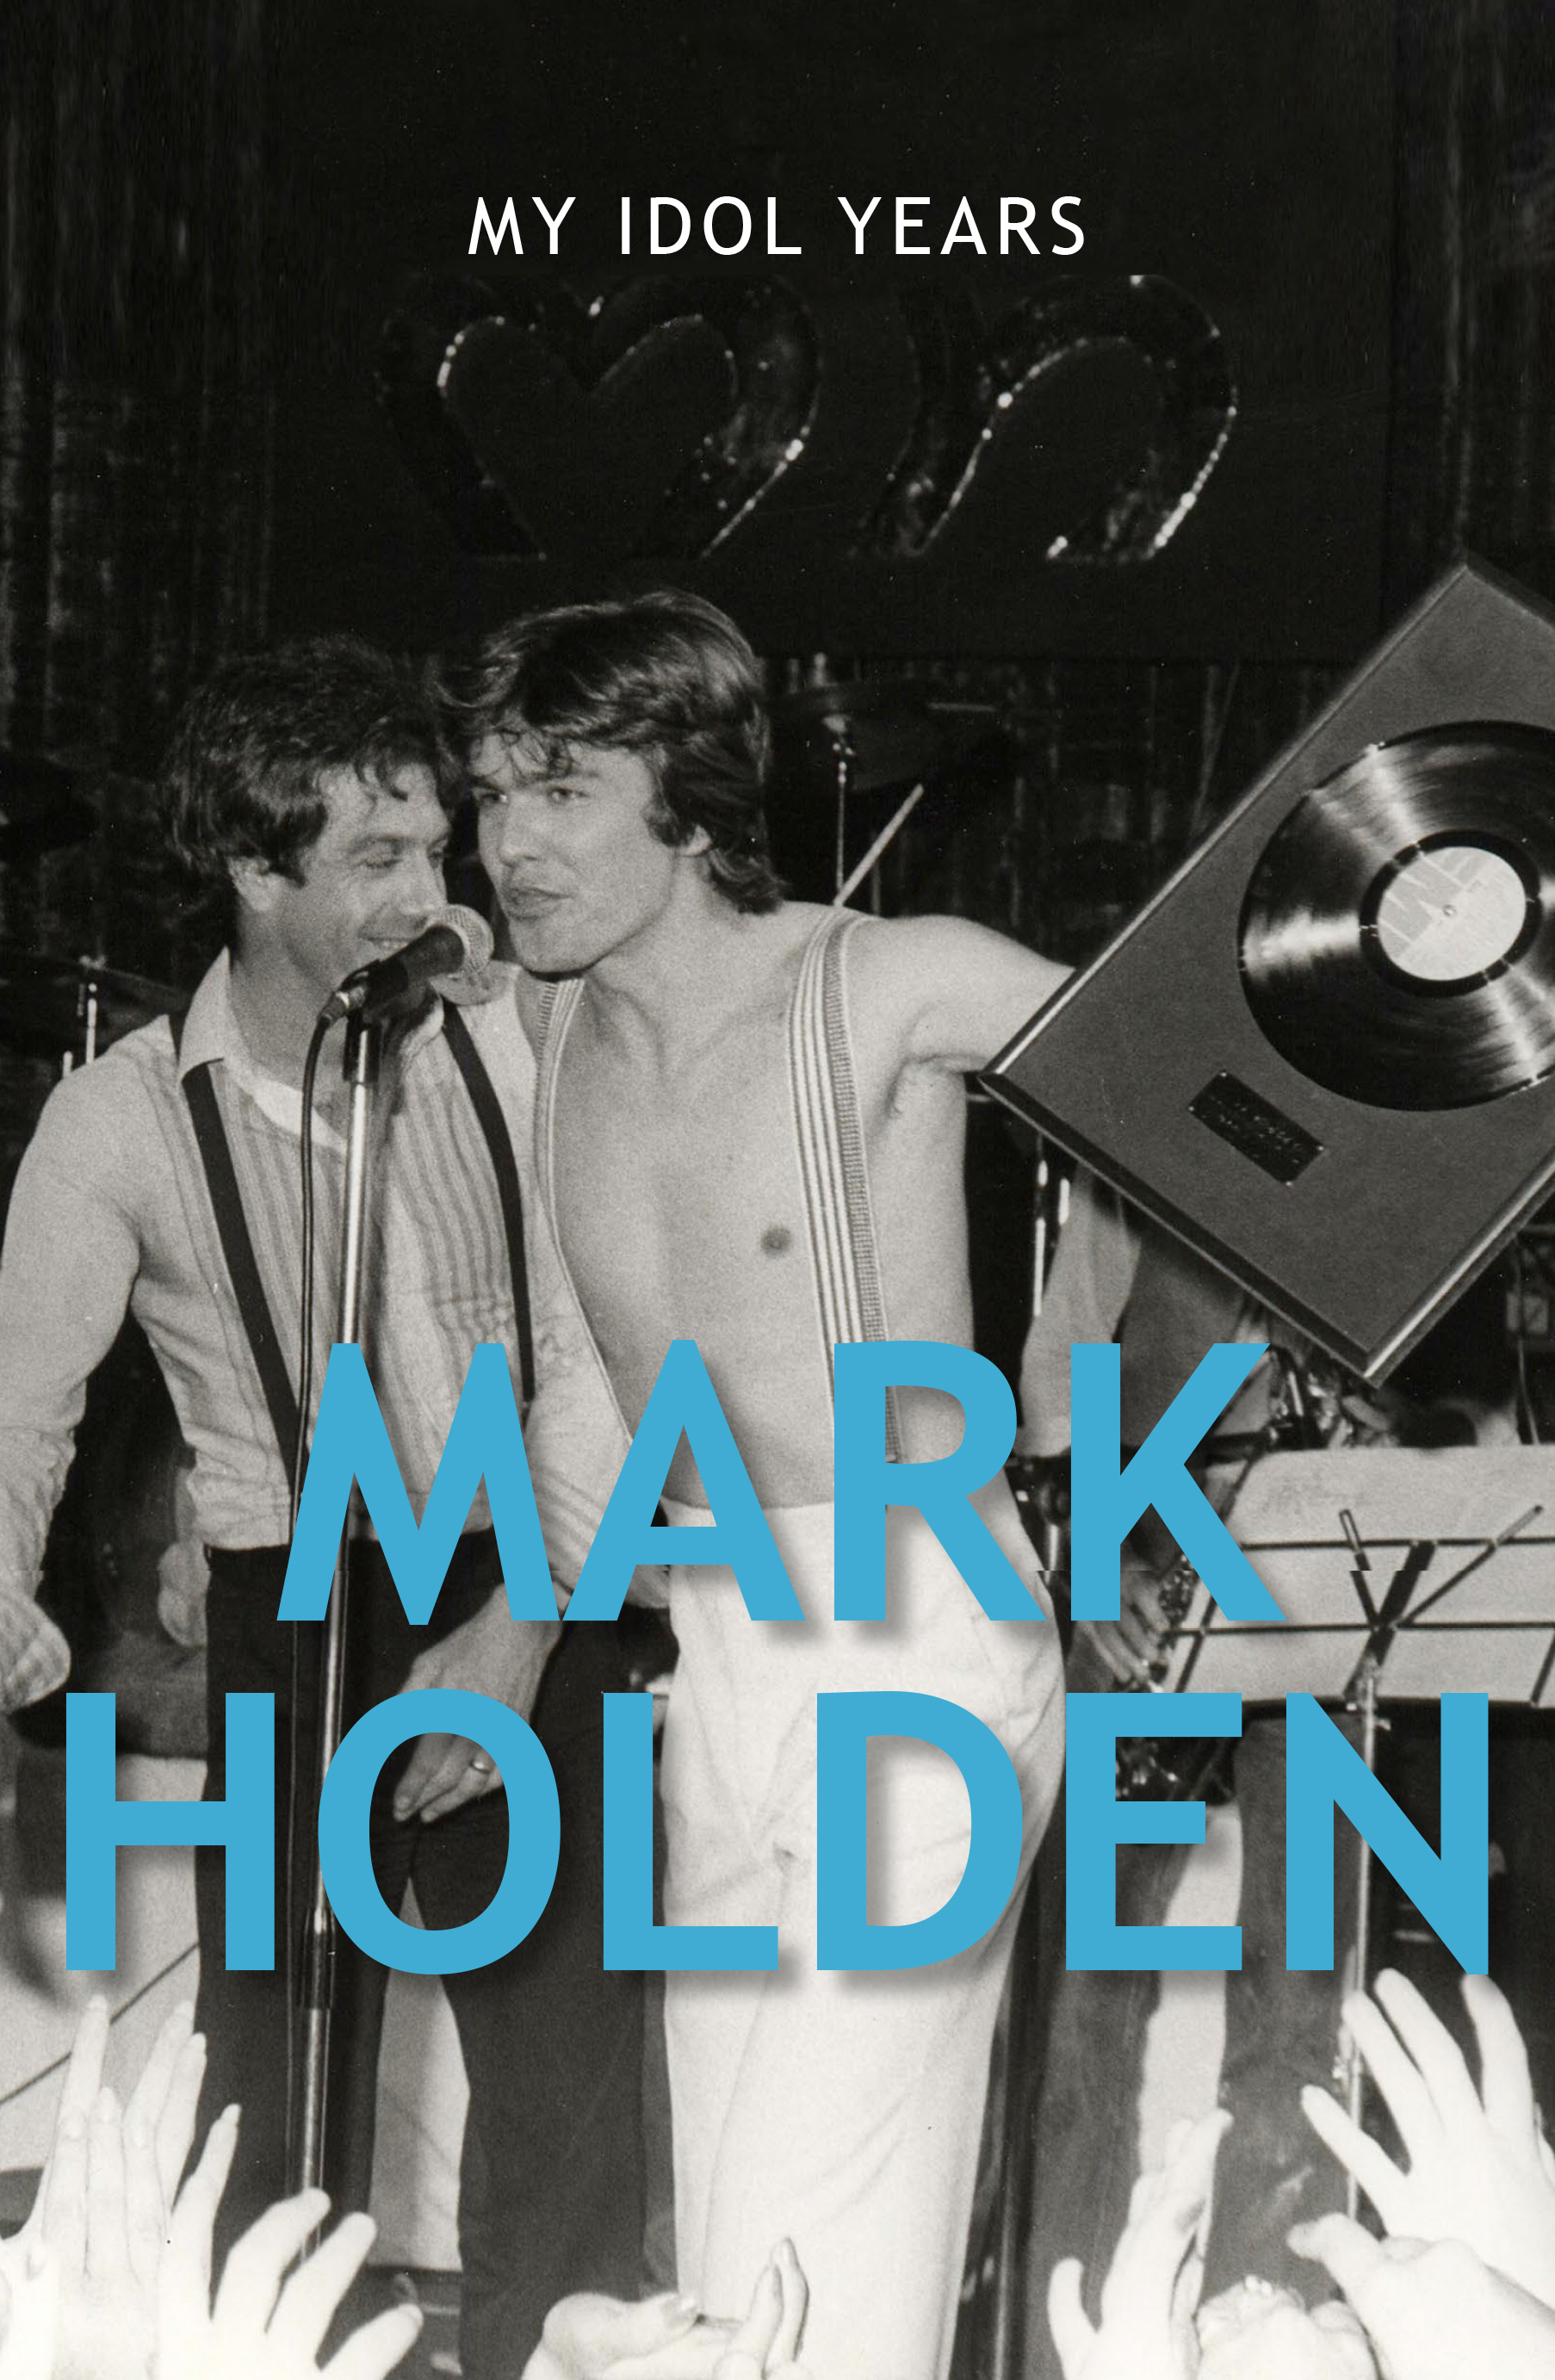 Launch of My Idol Years by Mark Holden